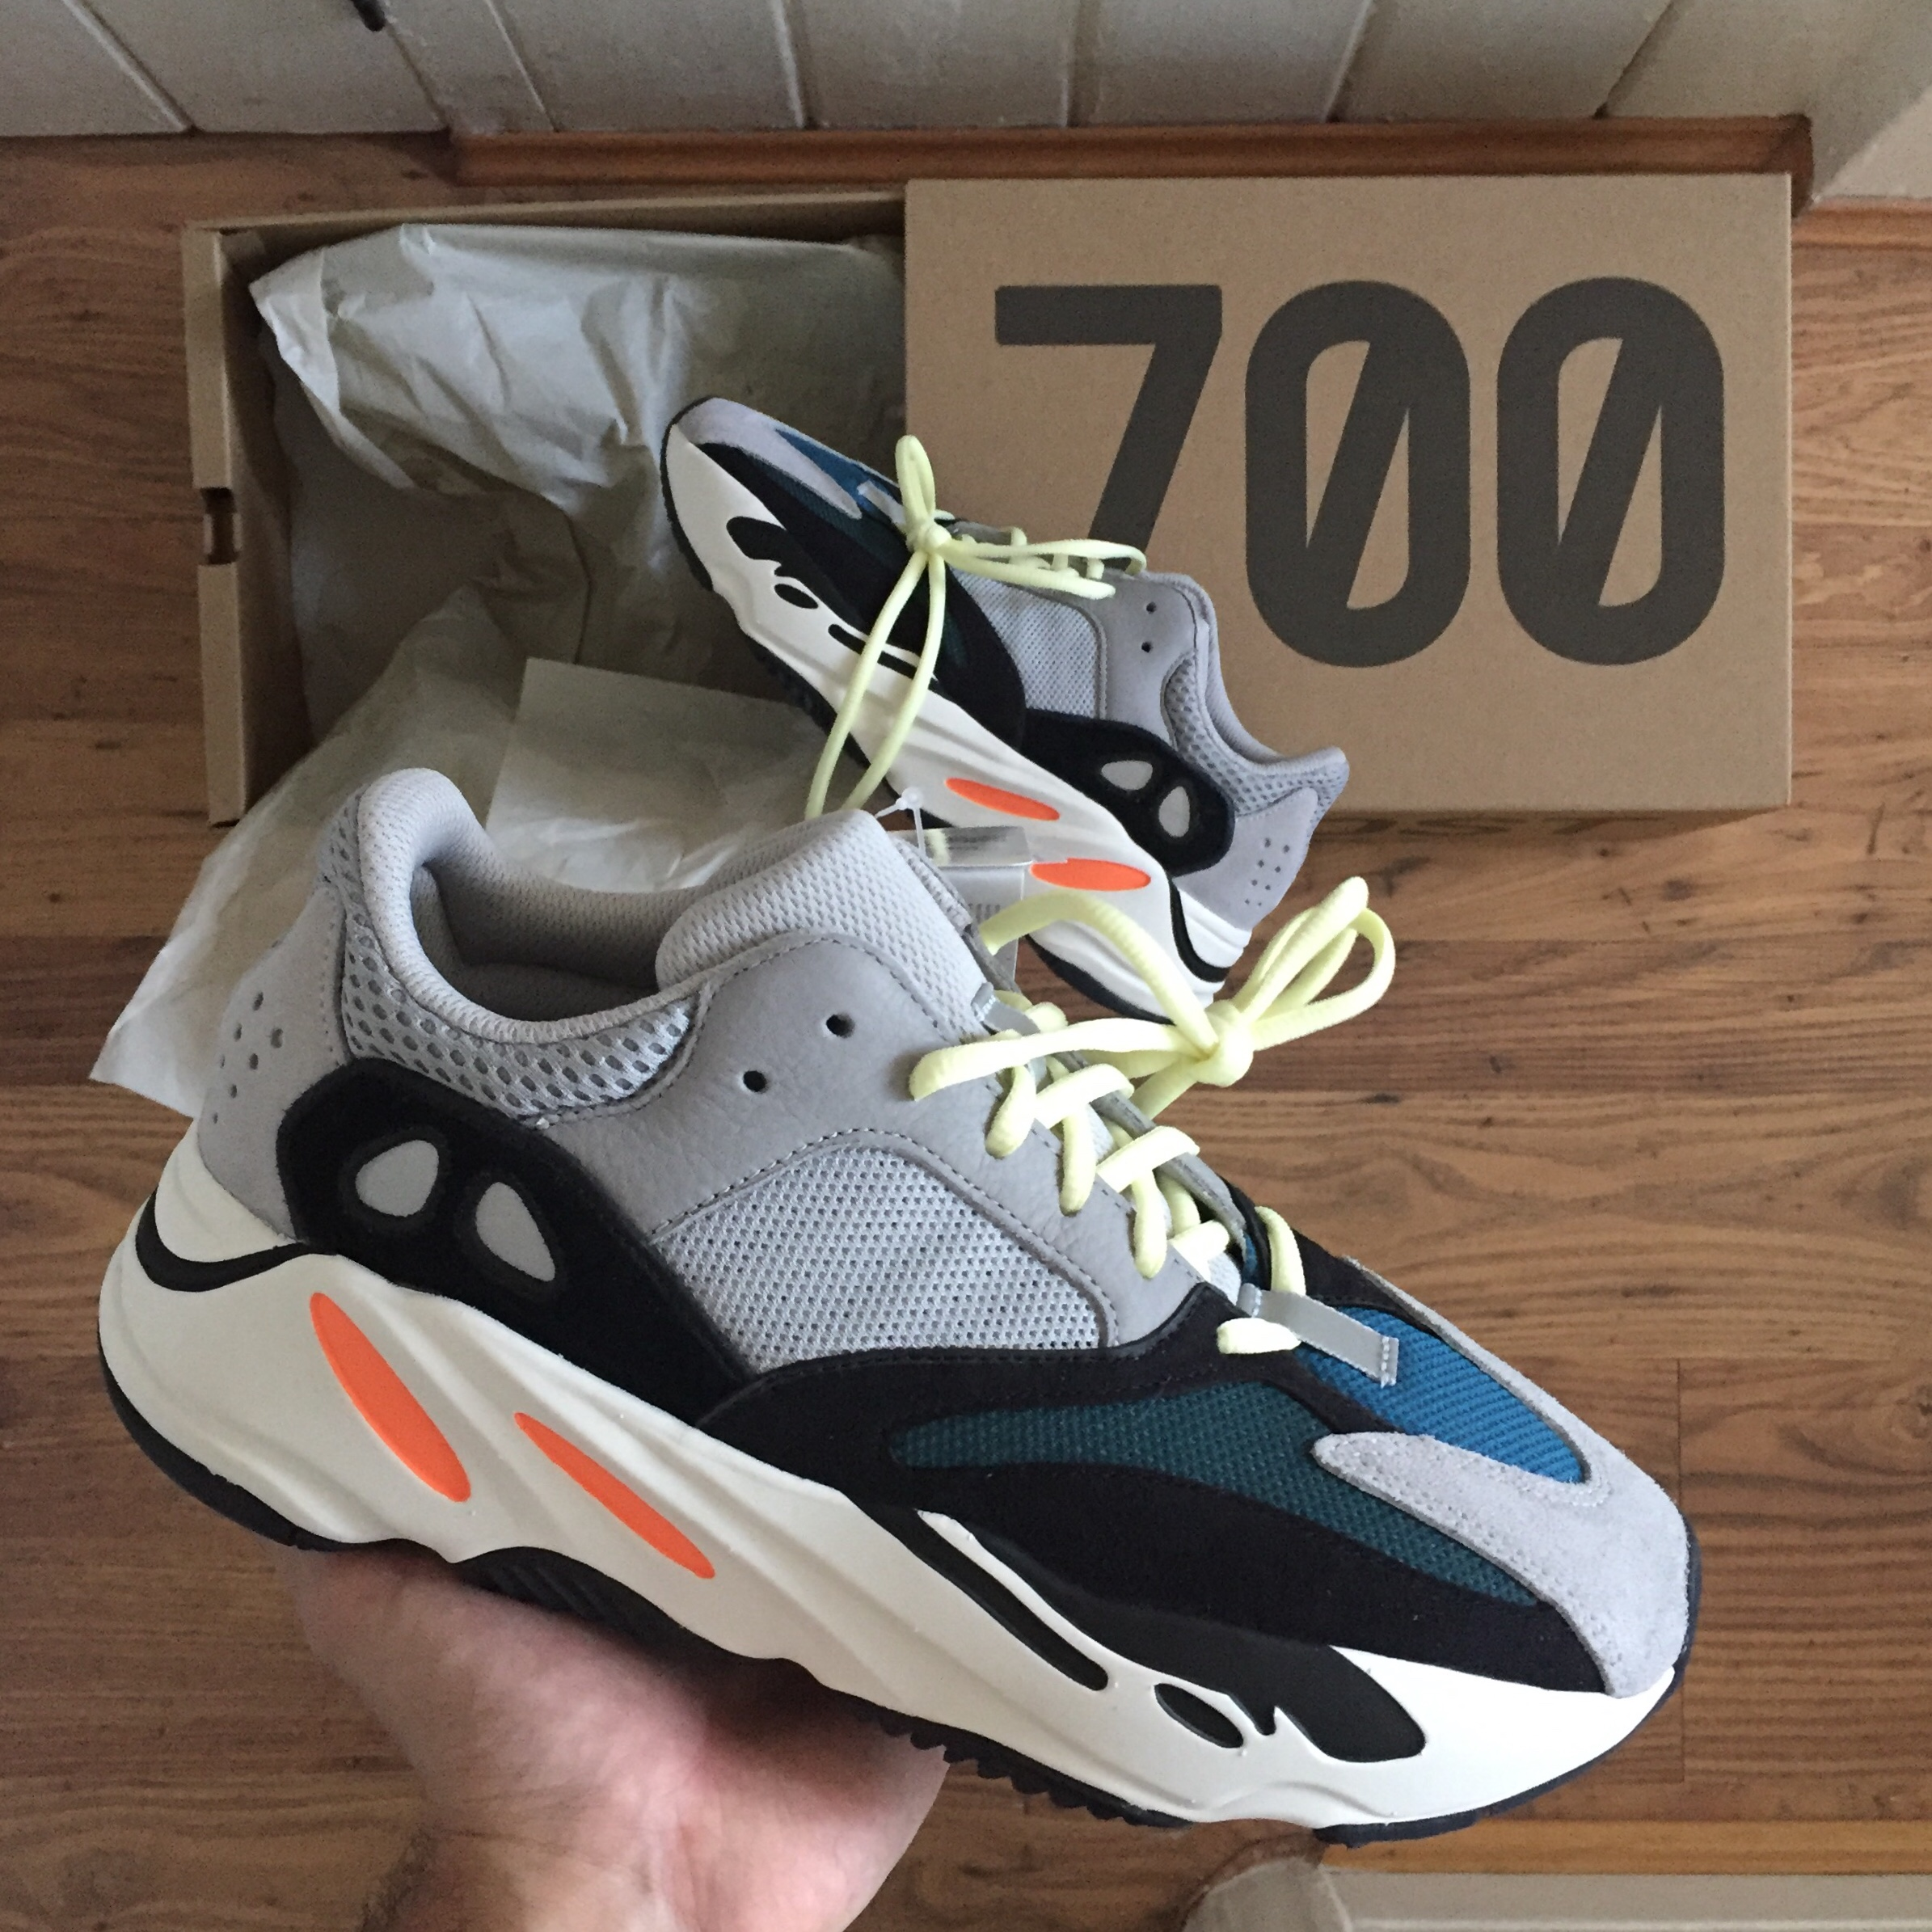 low priced 5ee98 61ef6 Adidas Yeezy Wave Runner 700 solid grey UK8 Brand... - Depop